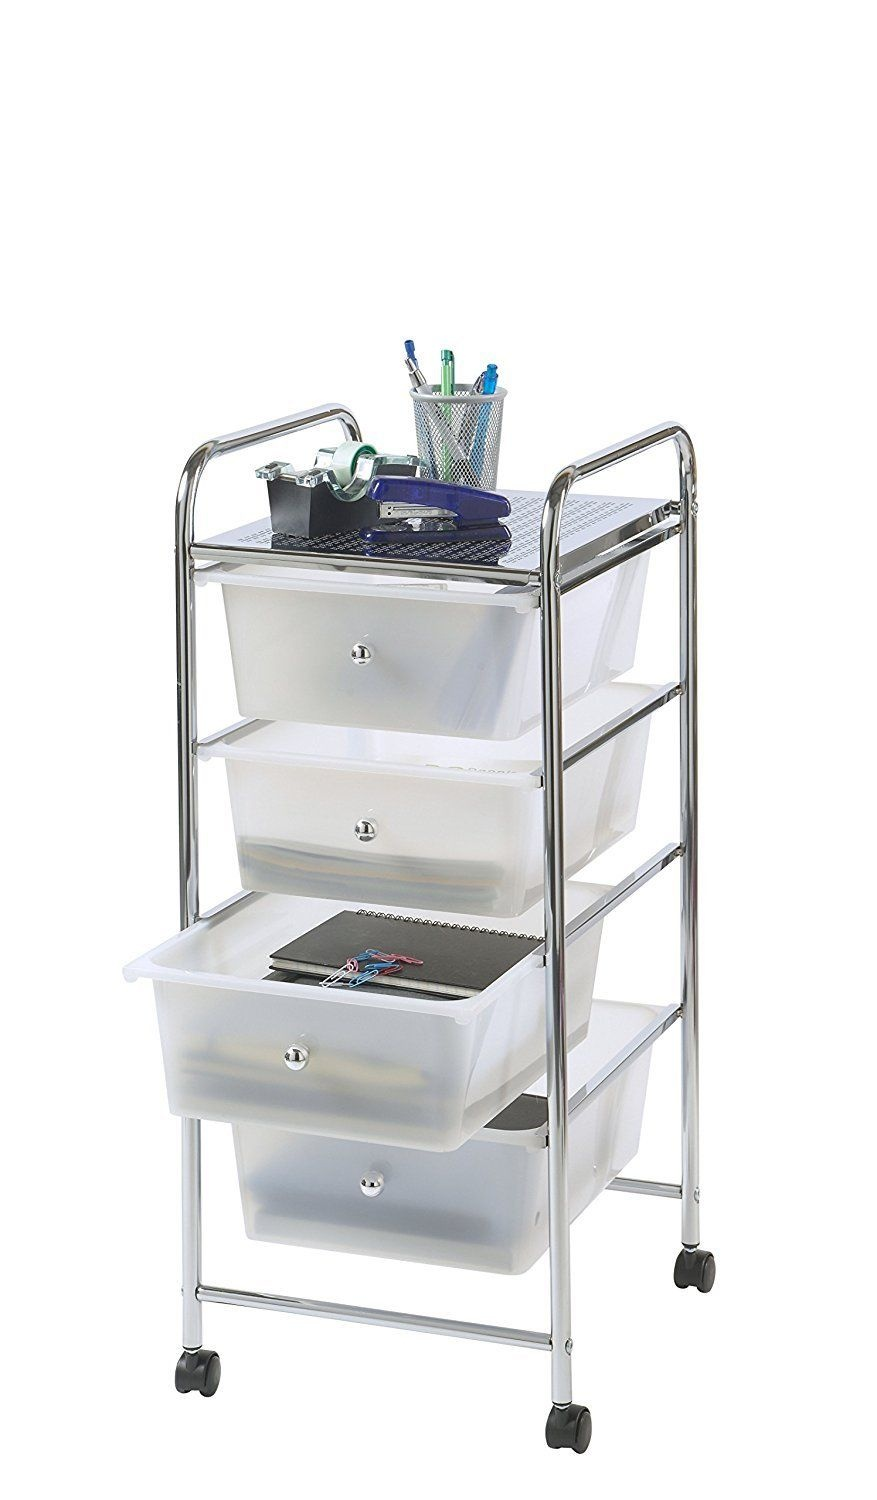 VonHaus 4 Drawer Mobile Storage Trolley for Home Office or Beauty Salon White